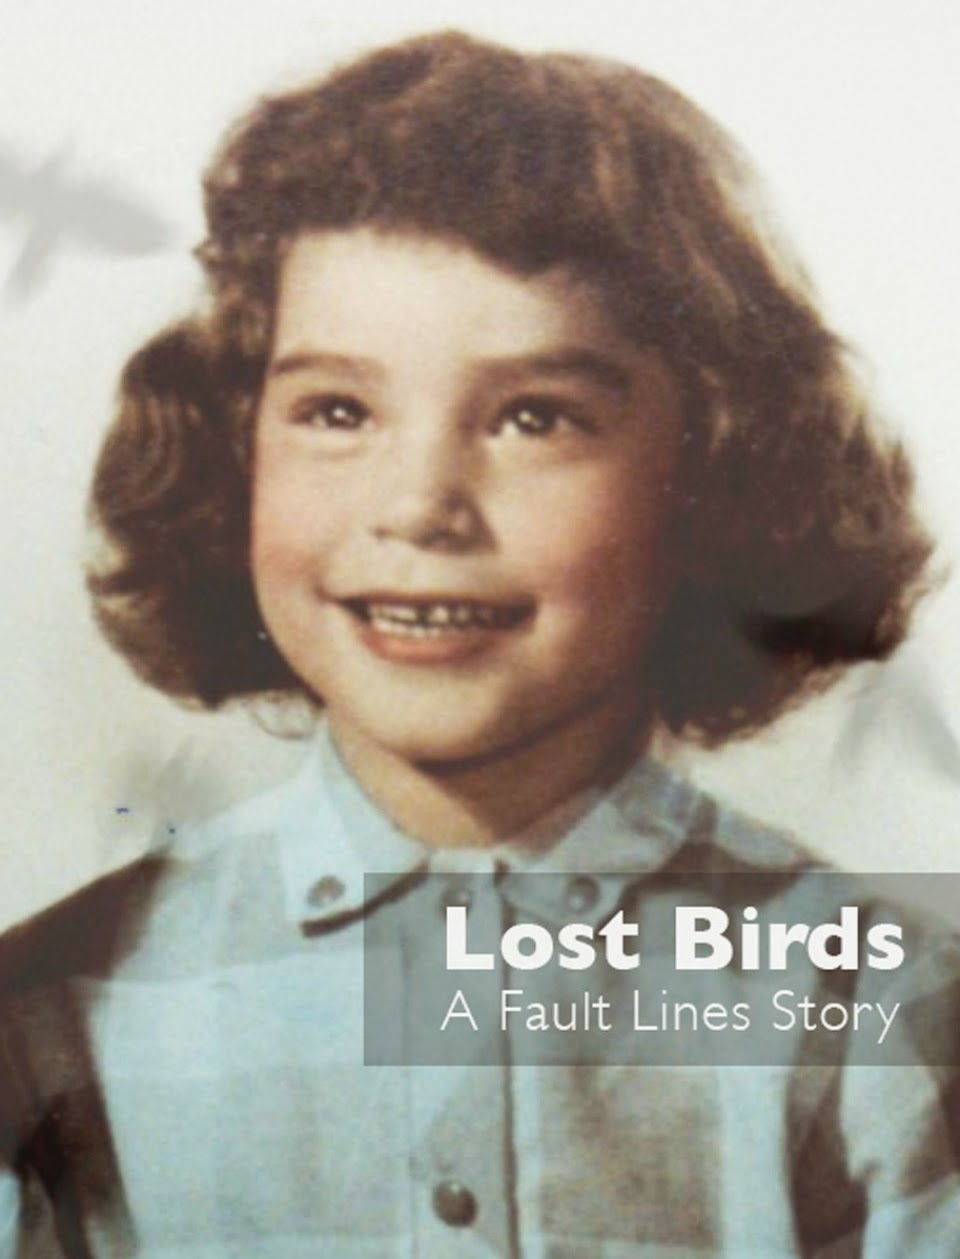 Lost Birds on Al Jazeera Fault Lines